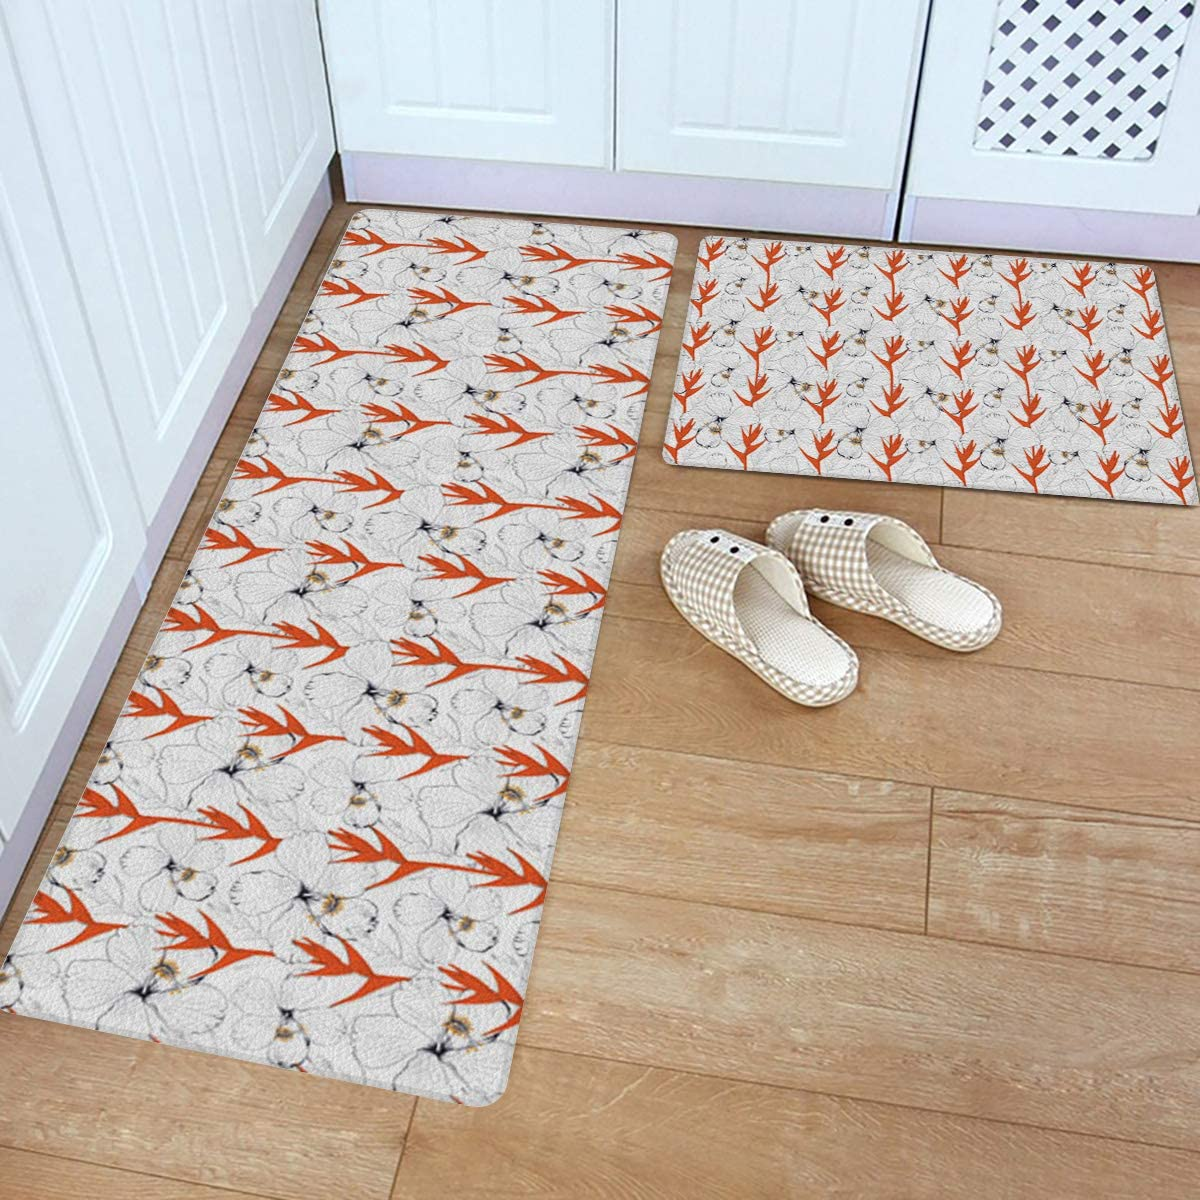 Kitchen Rug Large special price Set 2 Piece PVC Flo Hibiscus White Floor Mat Super special price Leather